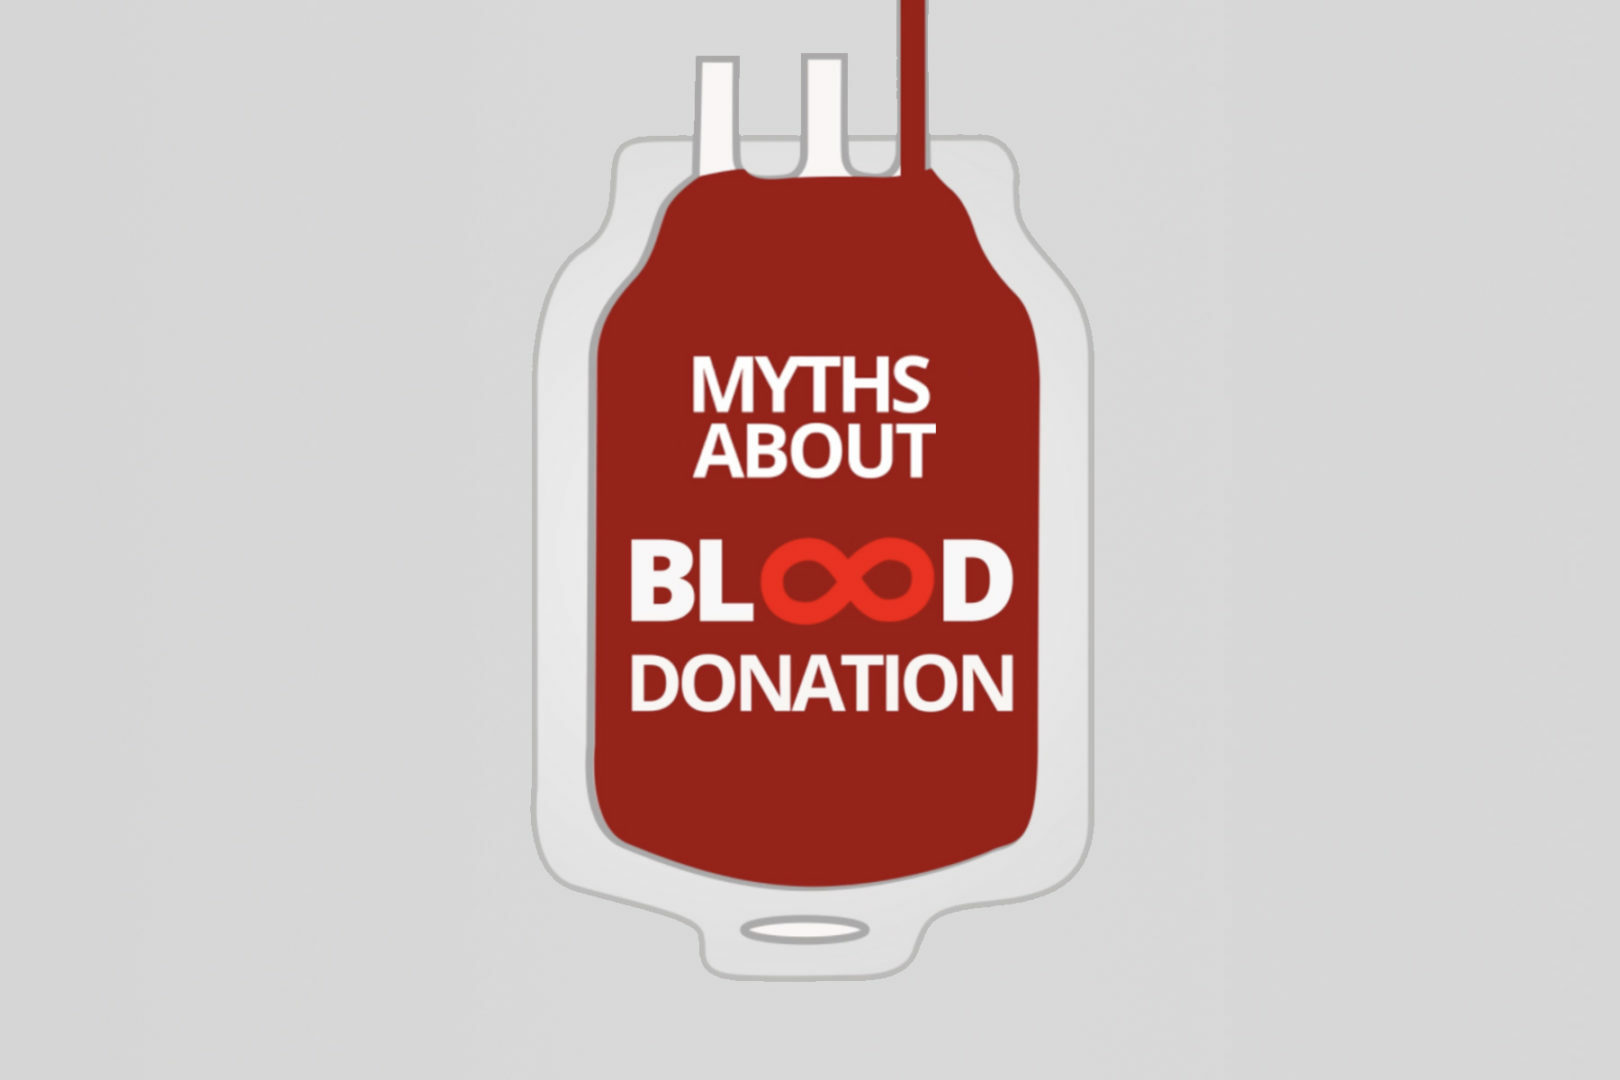 6 common blood donation myths – busted!